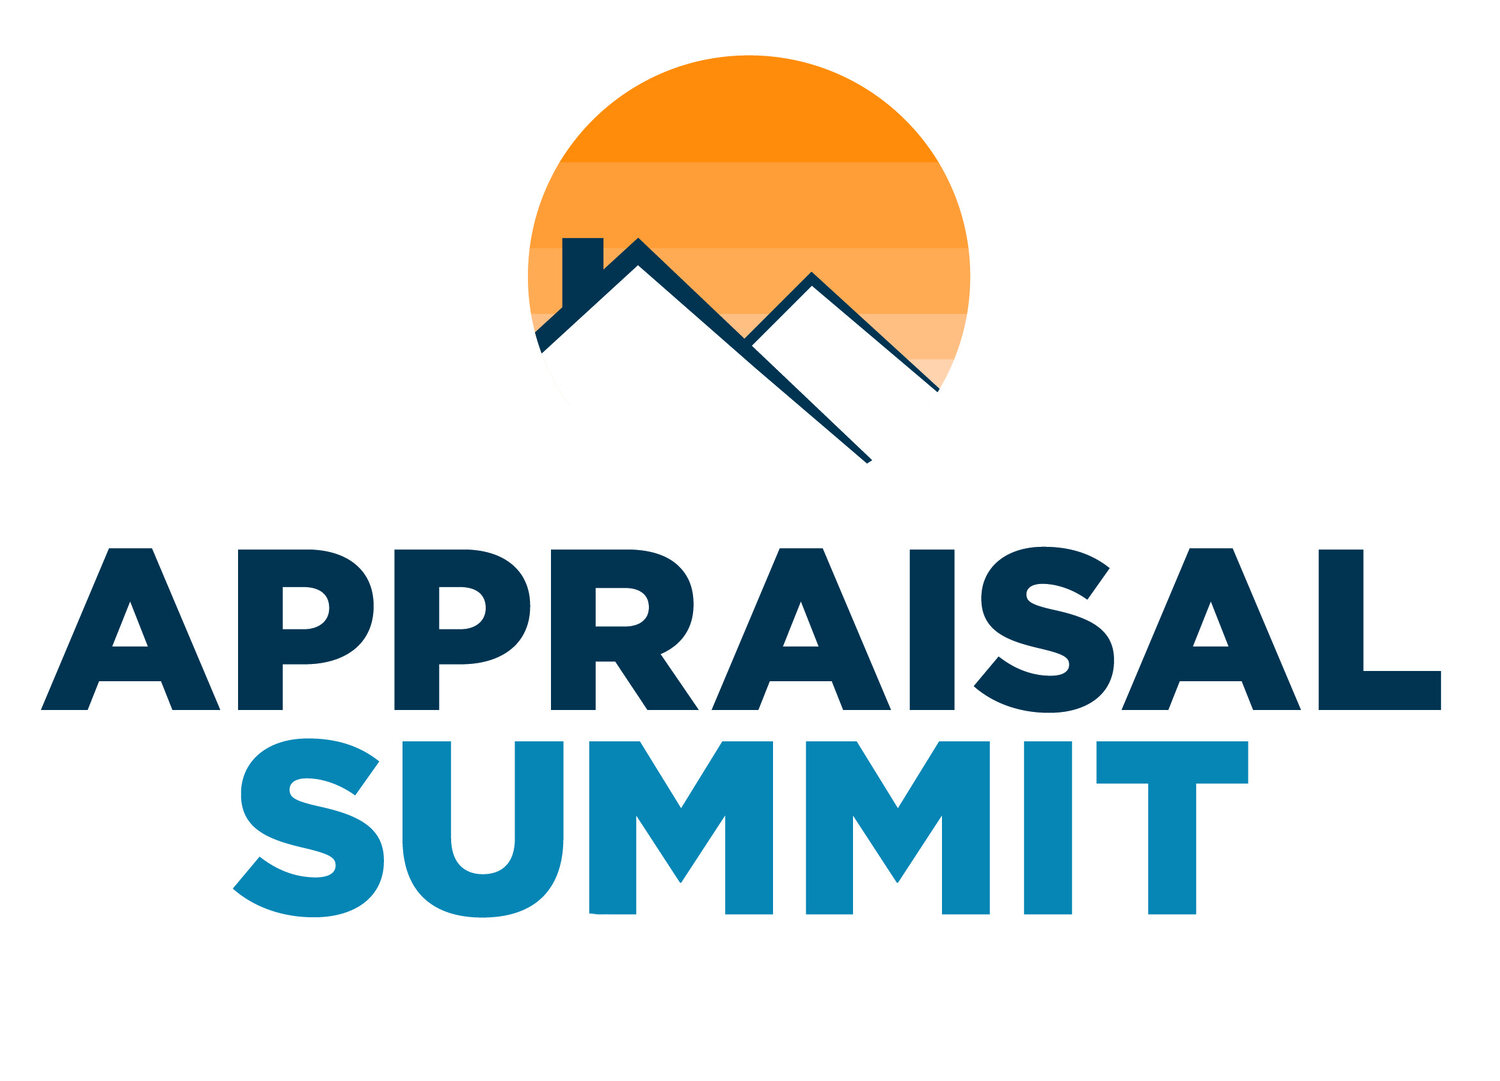 Appraisal Summit